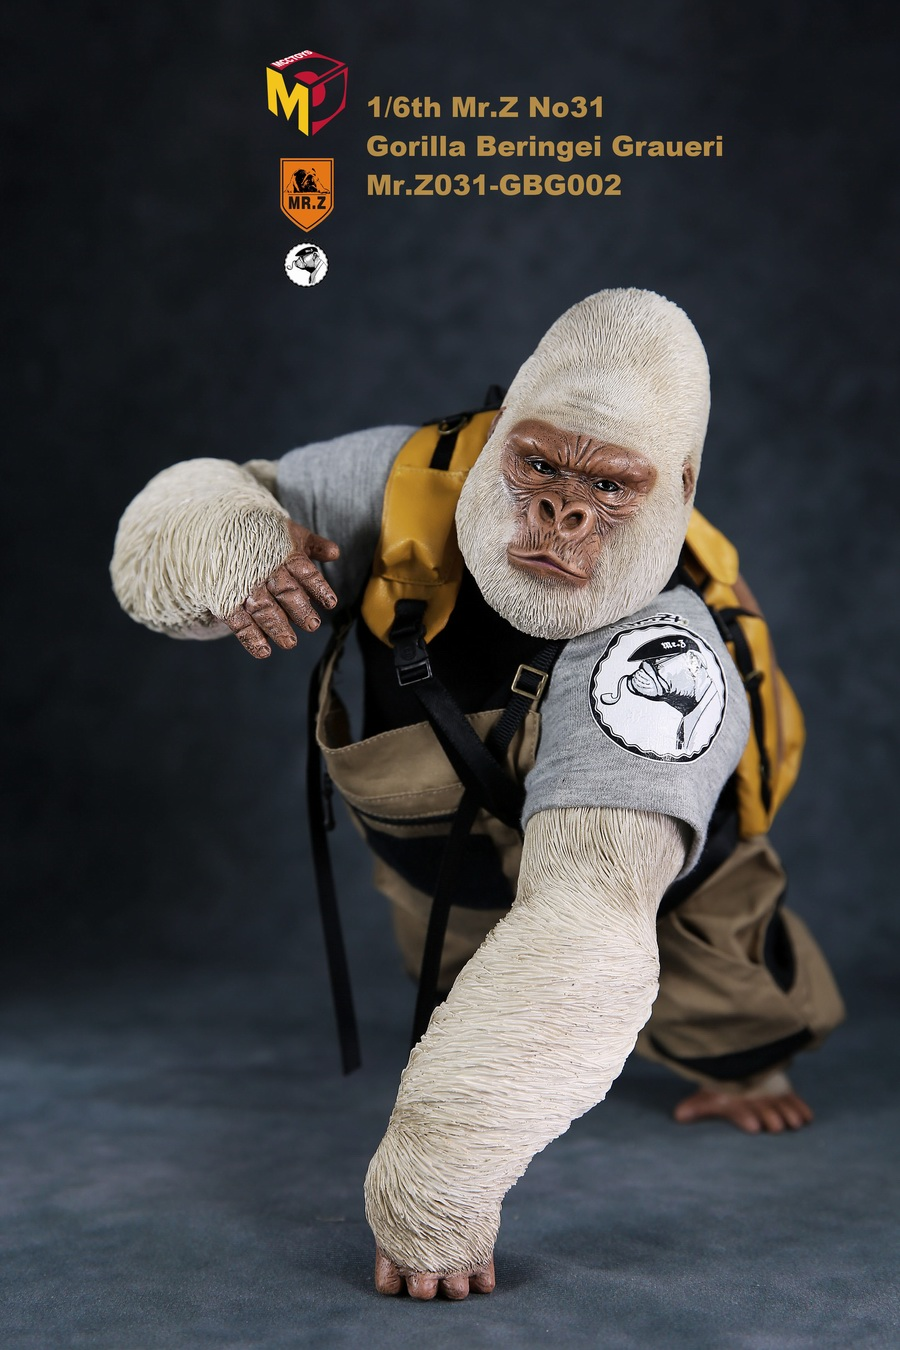 NEW PRODUCT: Mr.Z new product: 1/6 simulation animal model 31st bomb - African lowland gorilla (all 2 heads can be changed to upper limbs) 10110511